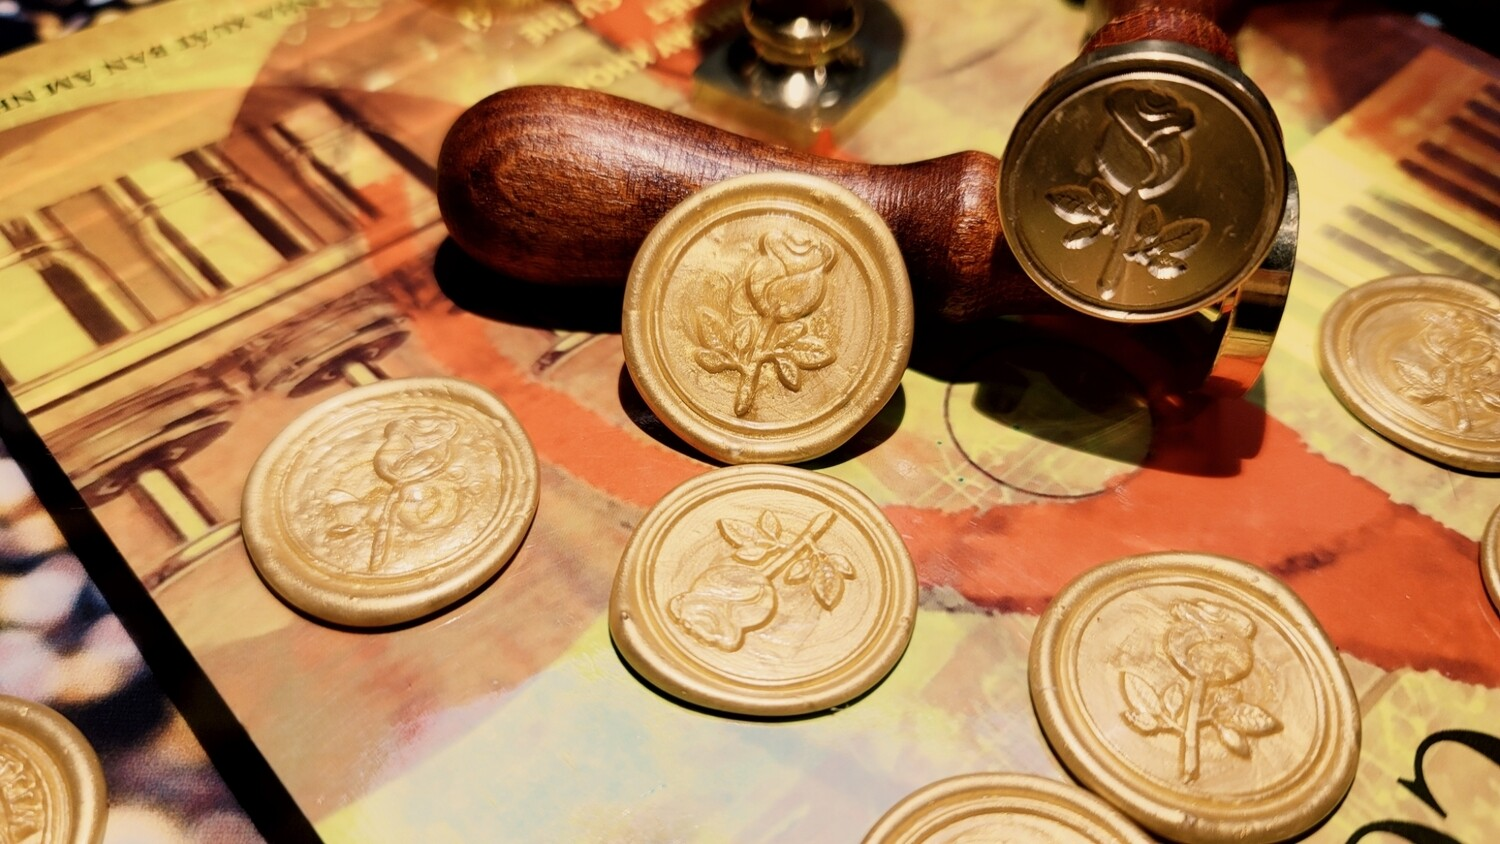 A Rose flower Wax Seal Stamp